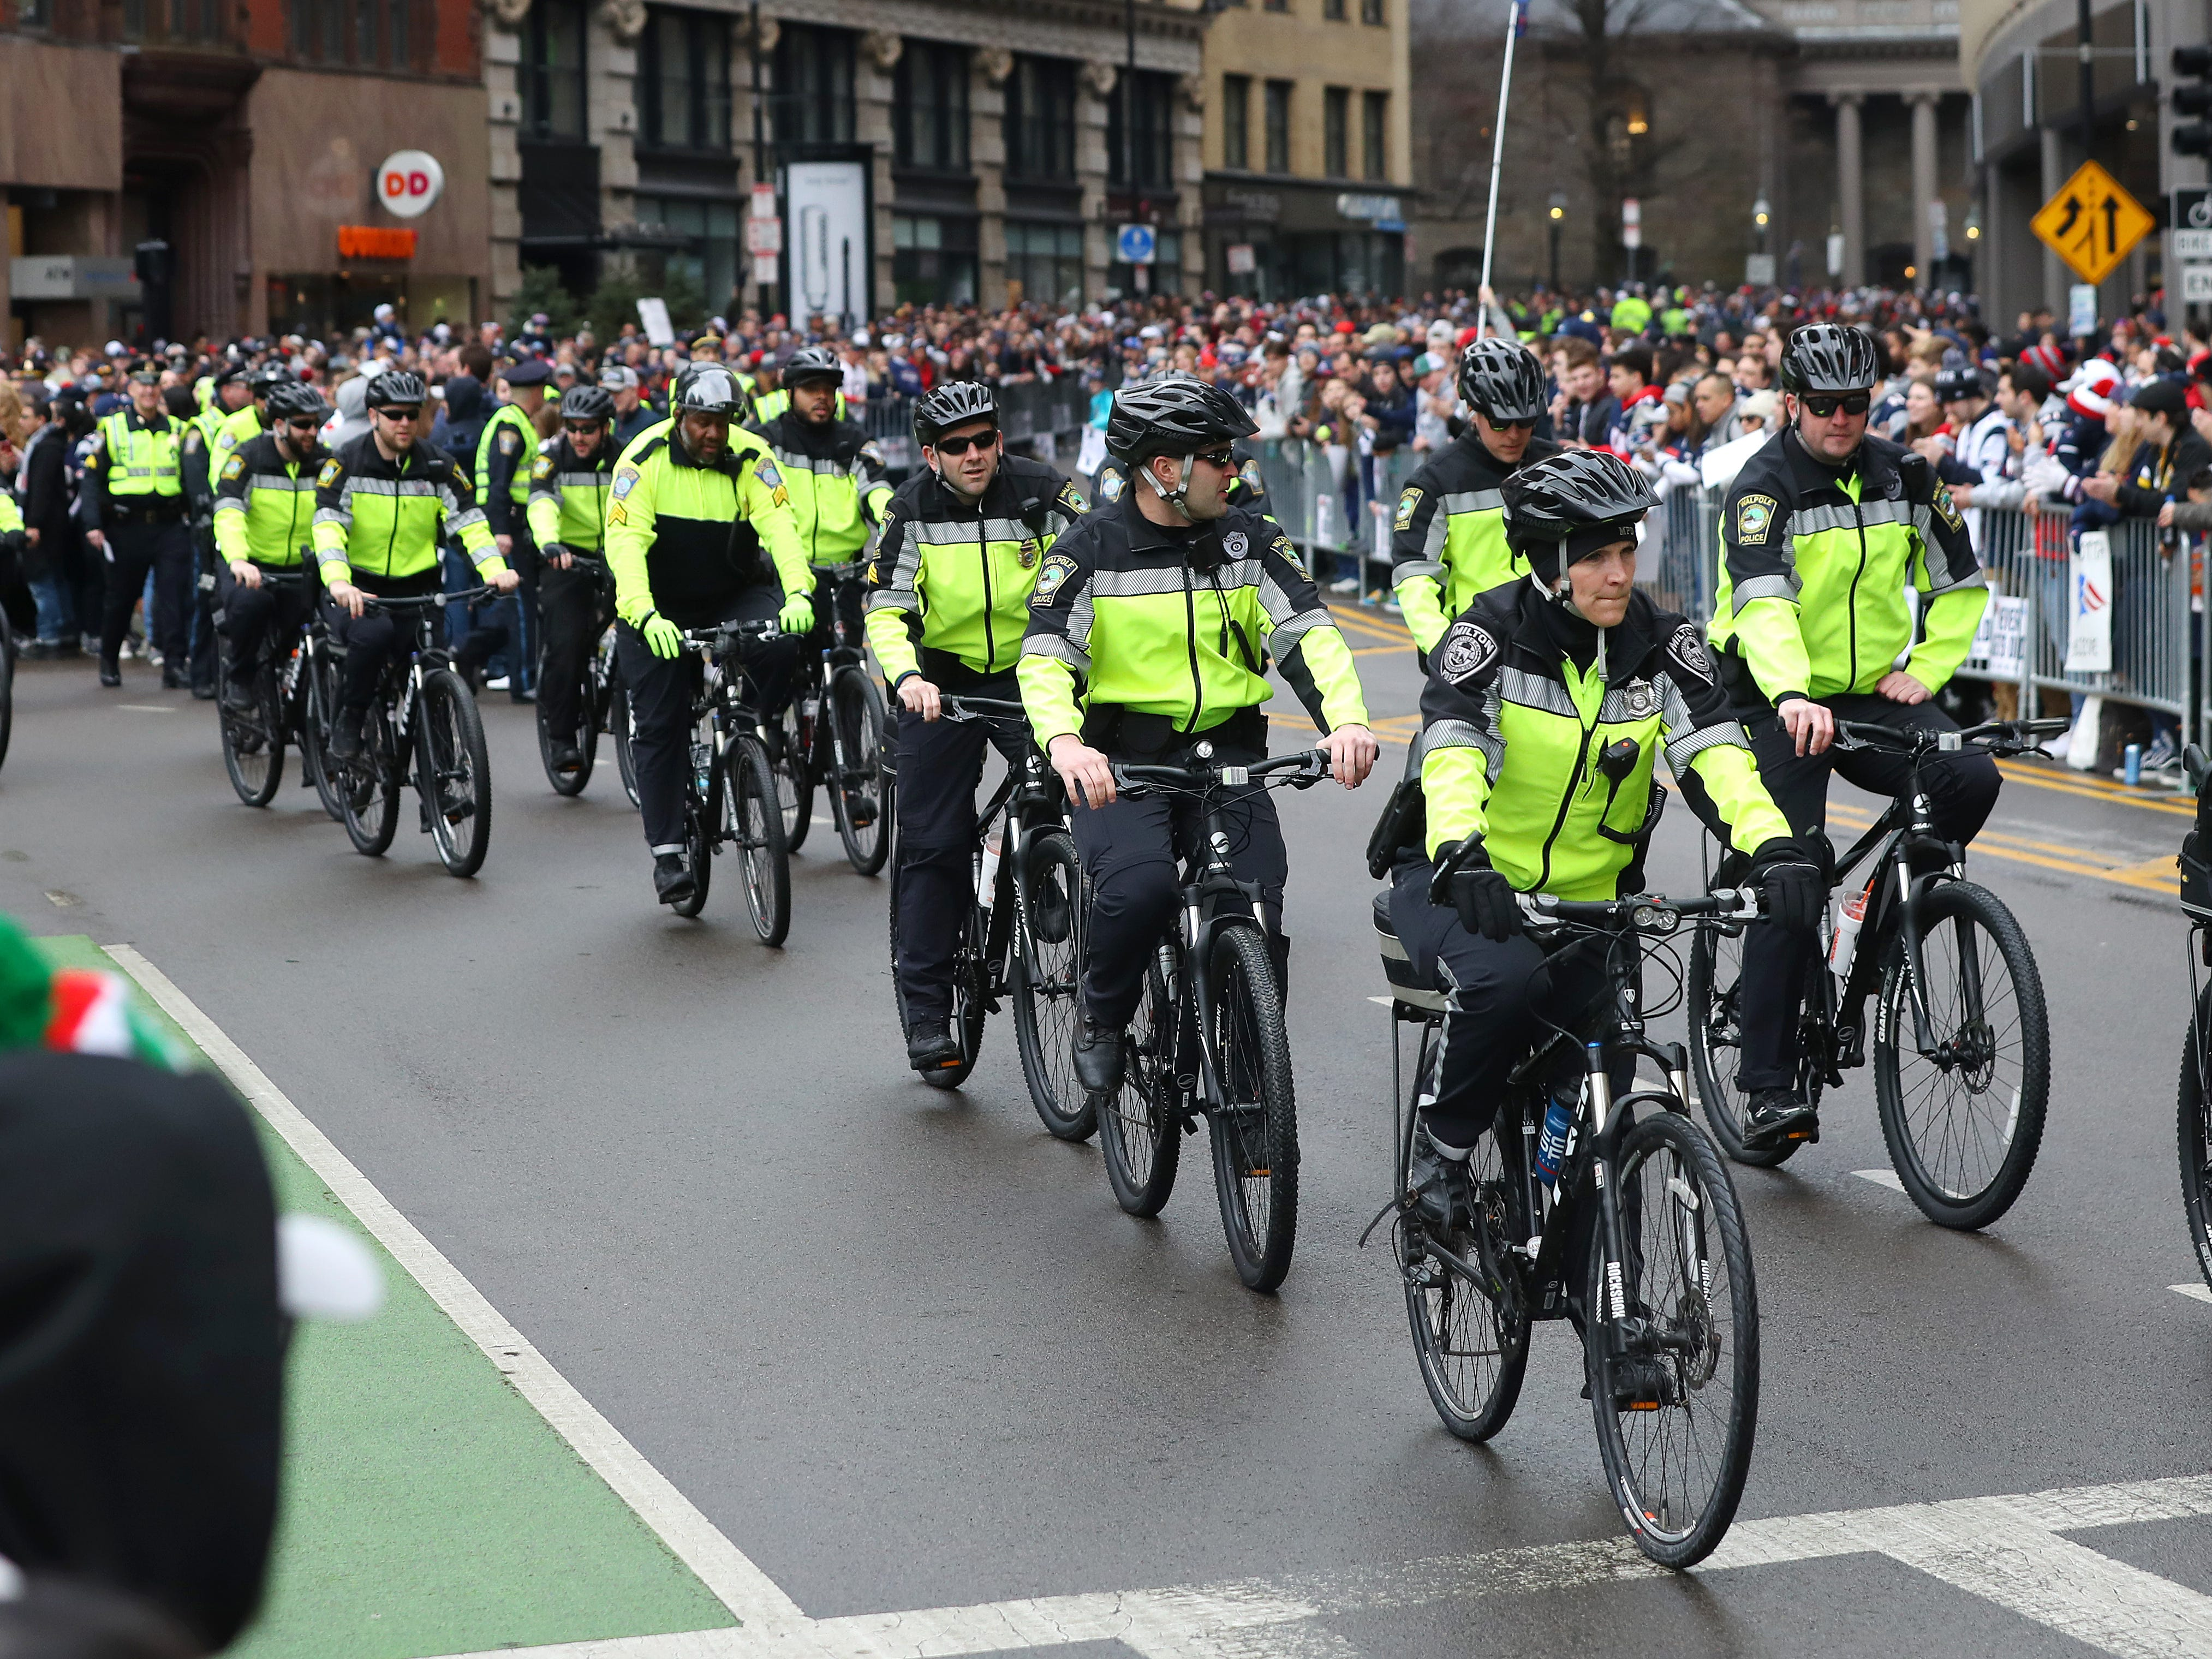 Police officers ride bikes on the parade route down Cambridge street ahead of the New England Patriots Victory Parade in Boston, Massachusetts. (Photo by Maddie Meyer/Getty Images)